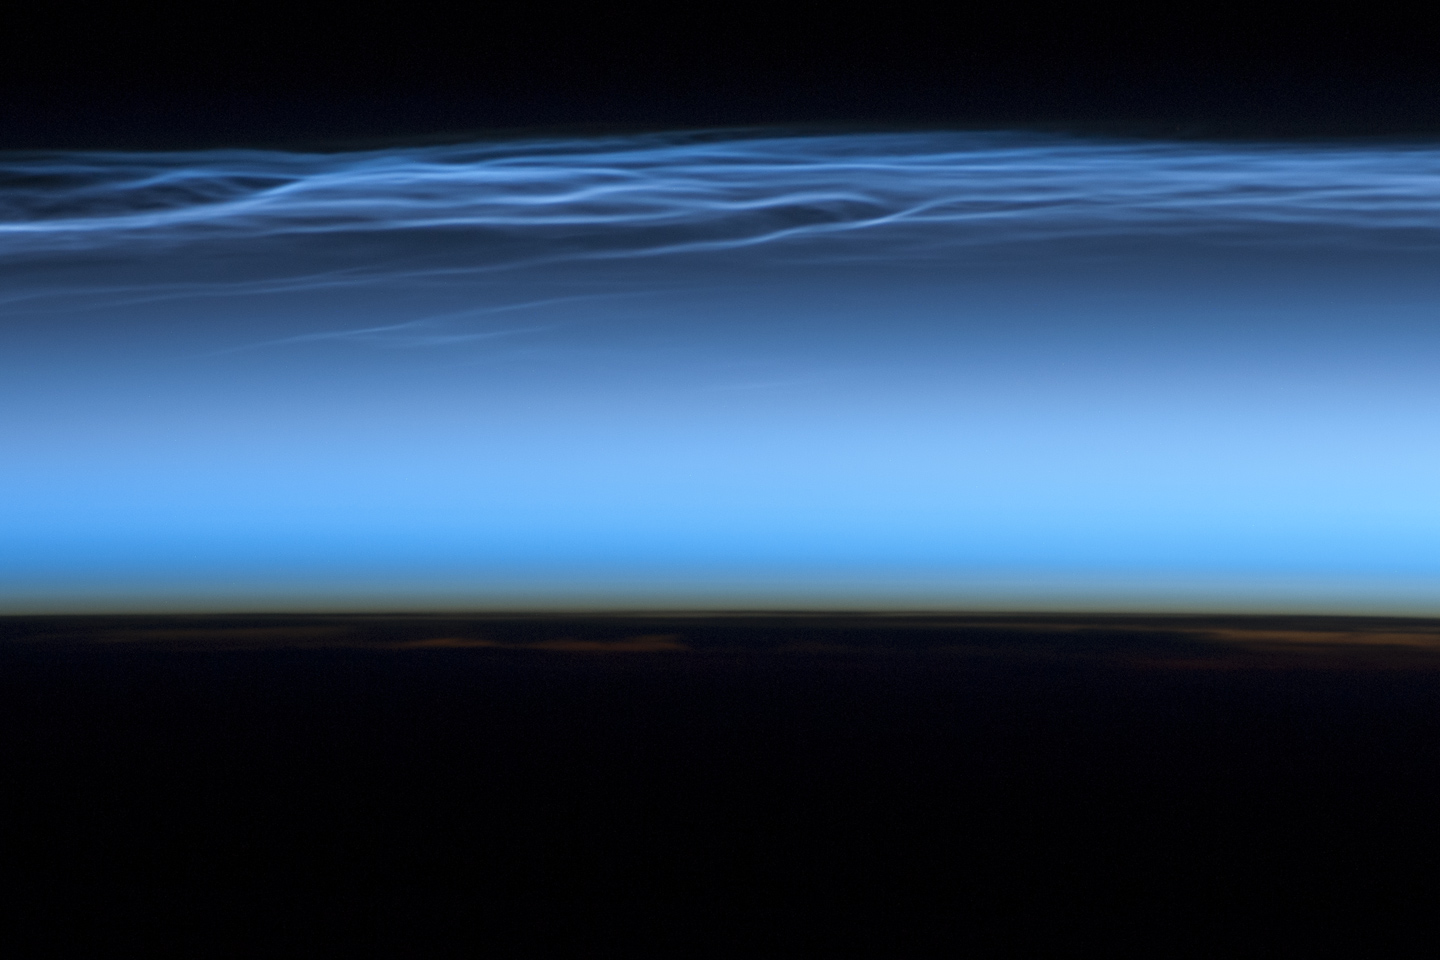 Increased meteor smoke: Noctilucent clouds brightening and spreading south